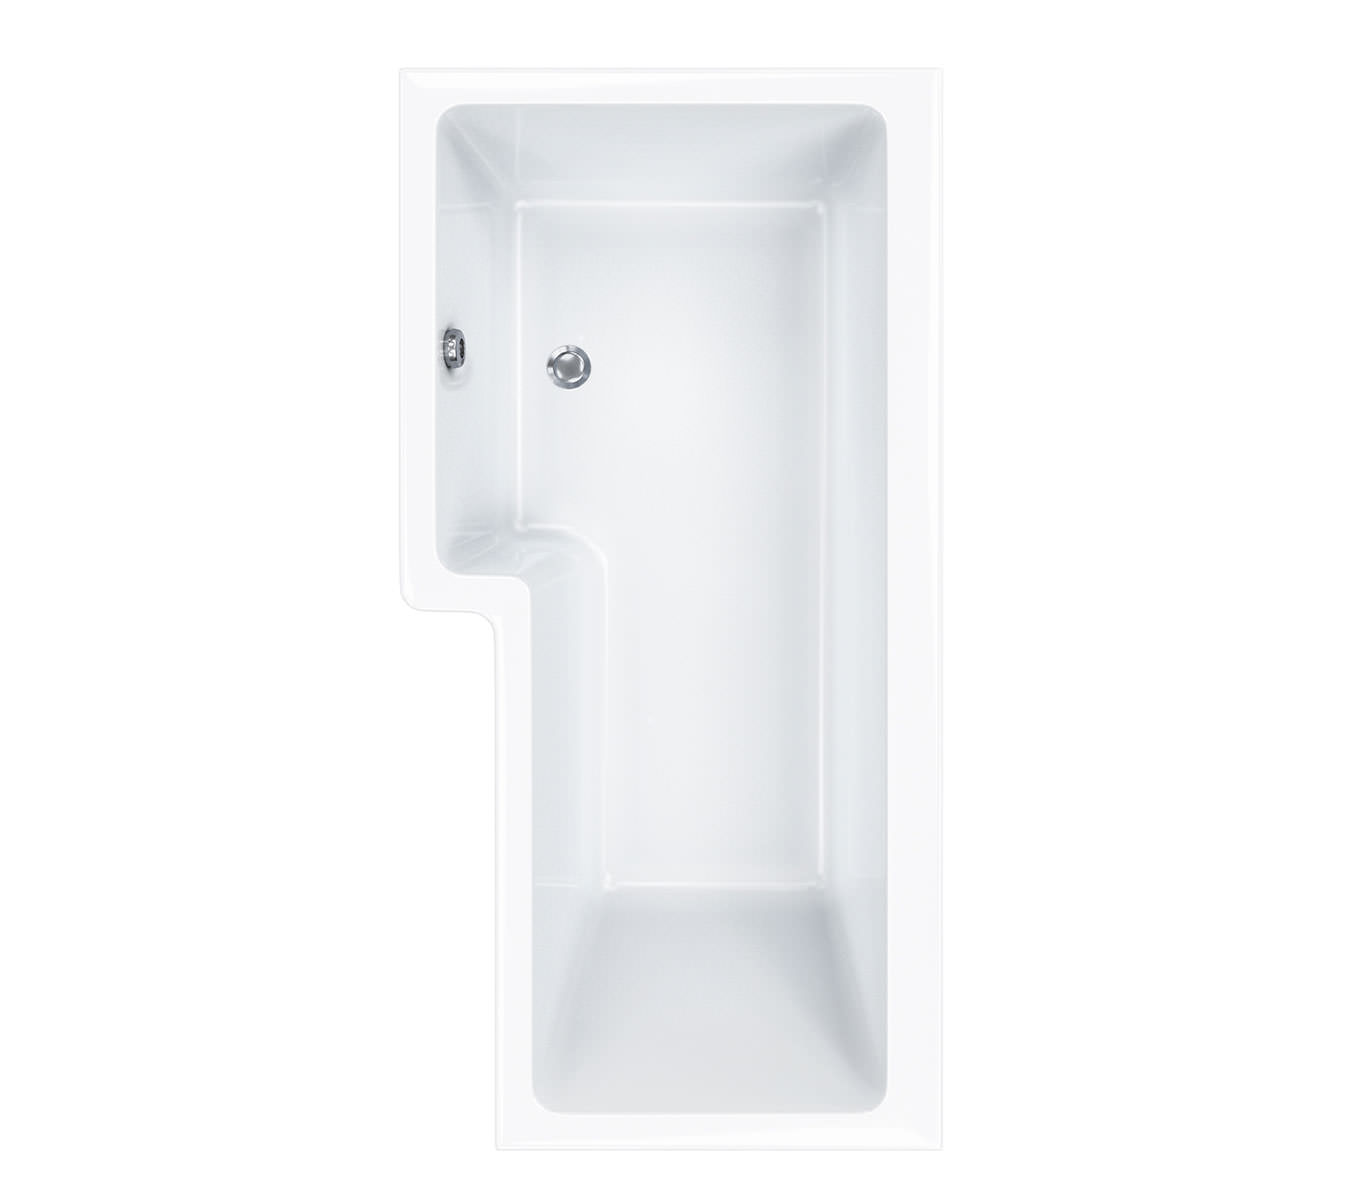 Carron Quantum Square 5mm Acrylic Shower Bath 1500 X 850mm